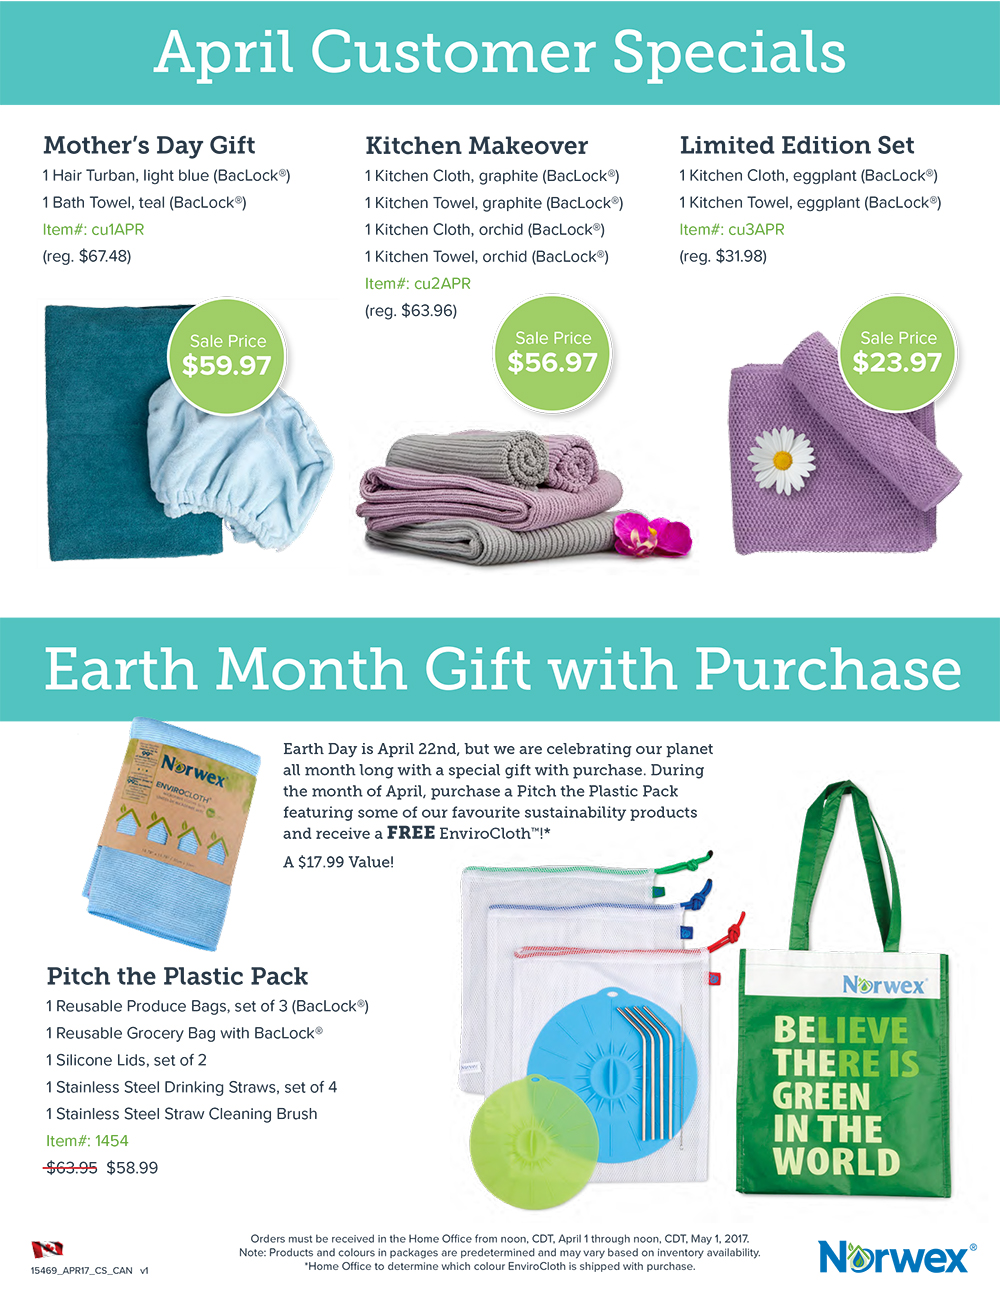 April Norwex Customer Specials